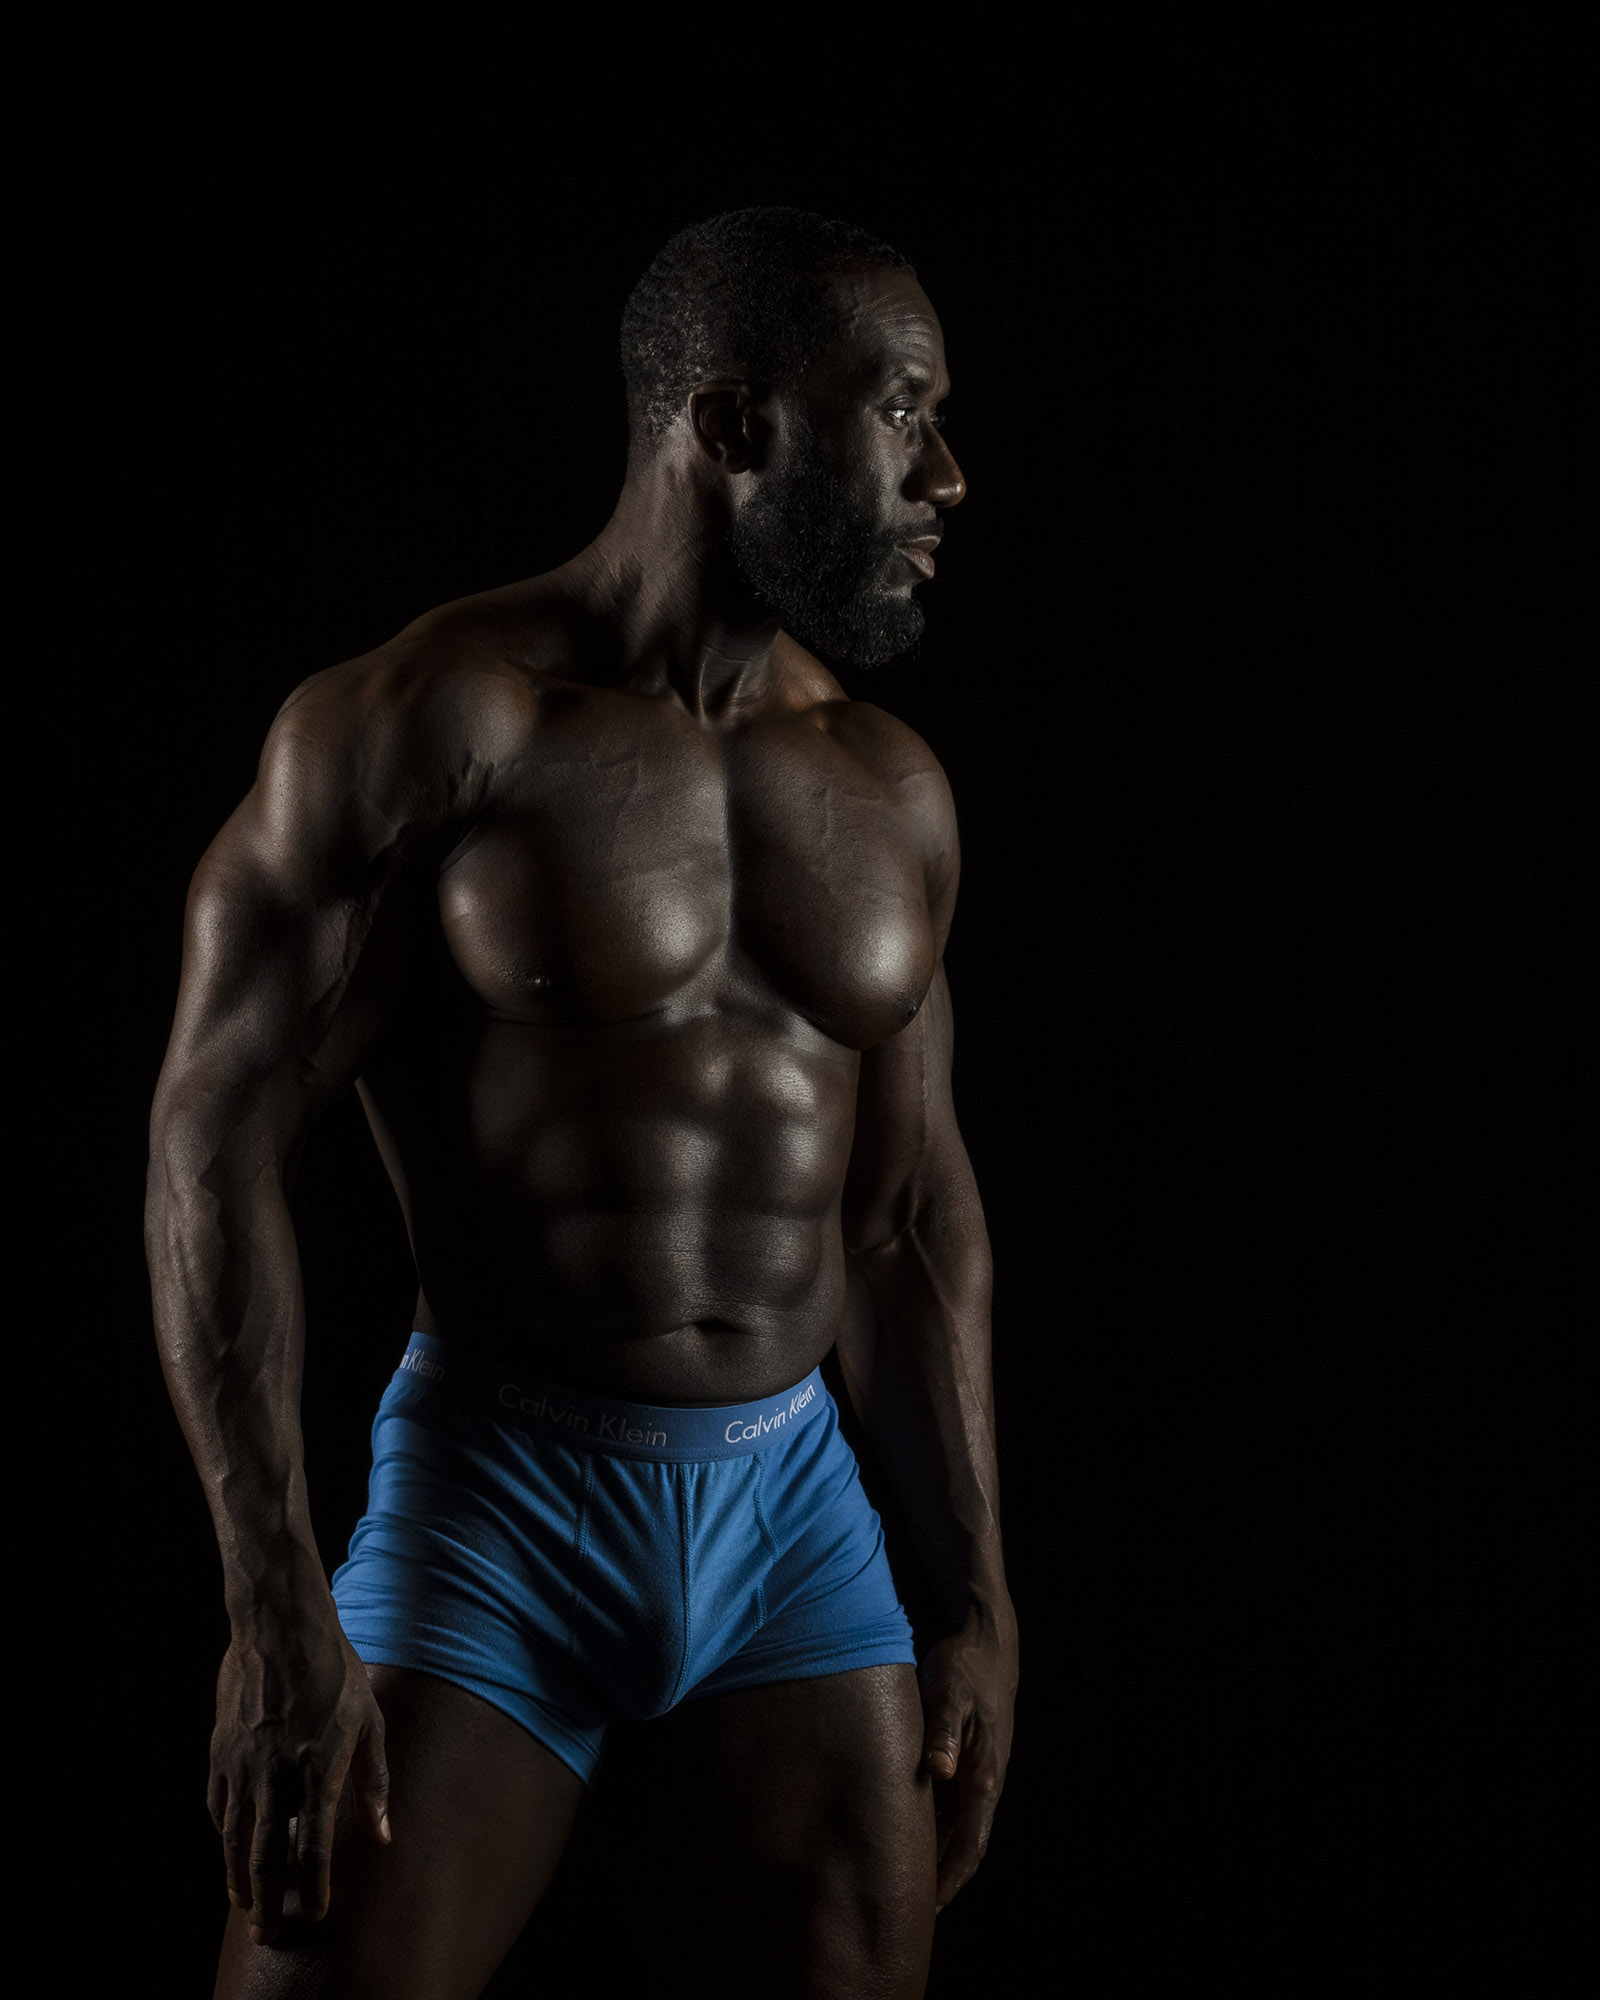 Using the lights to highlight his physique